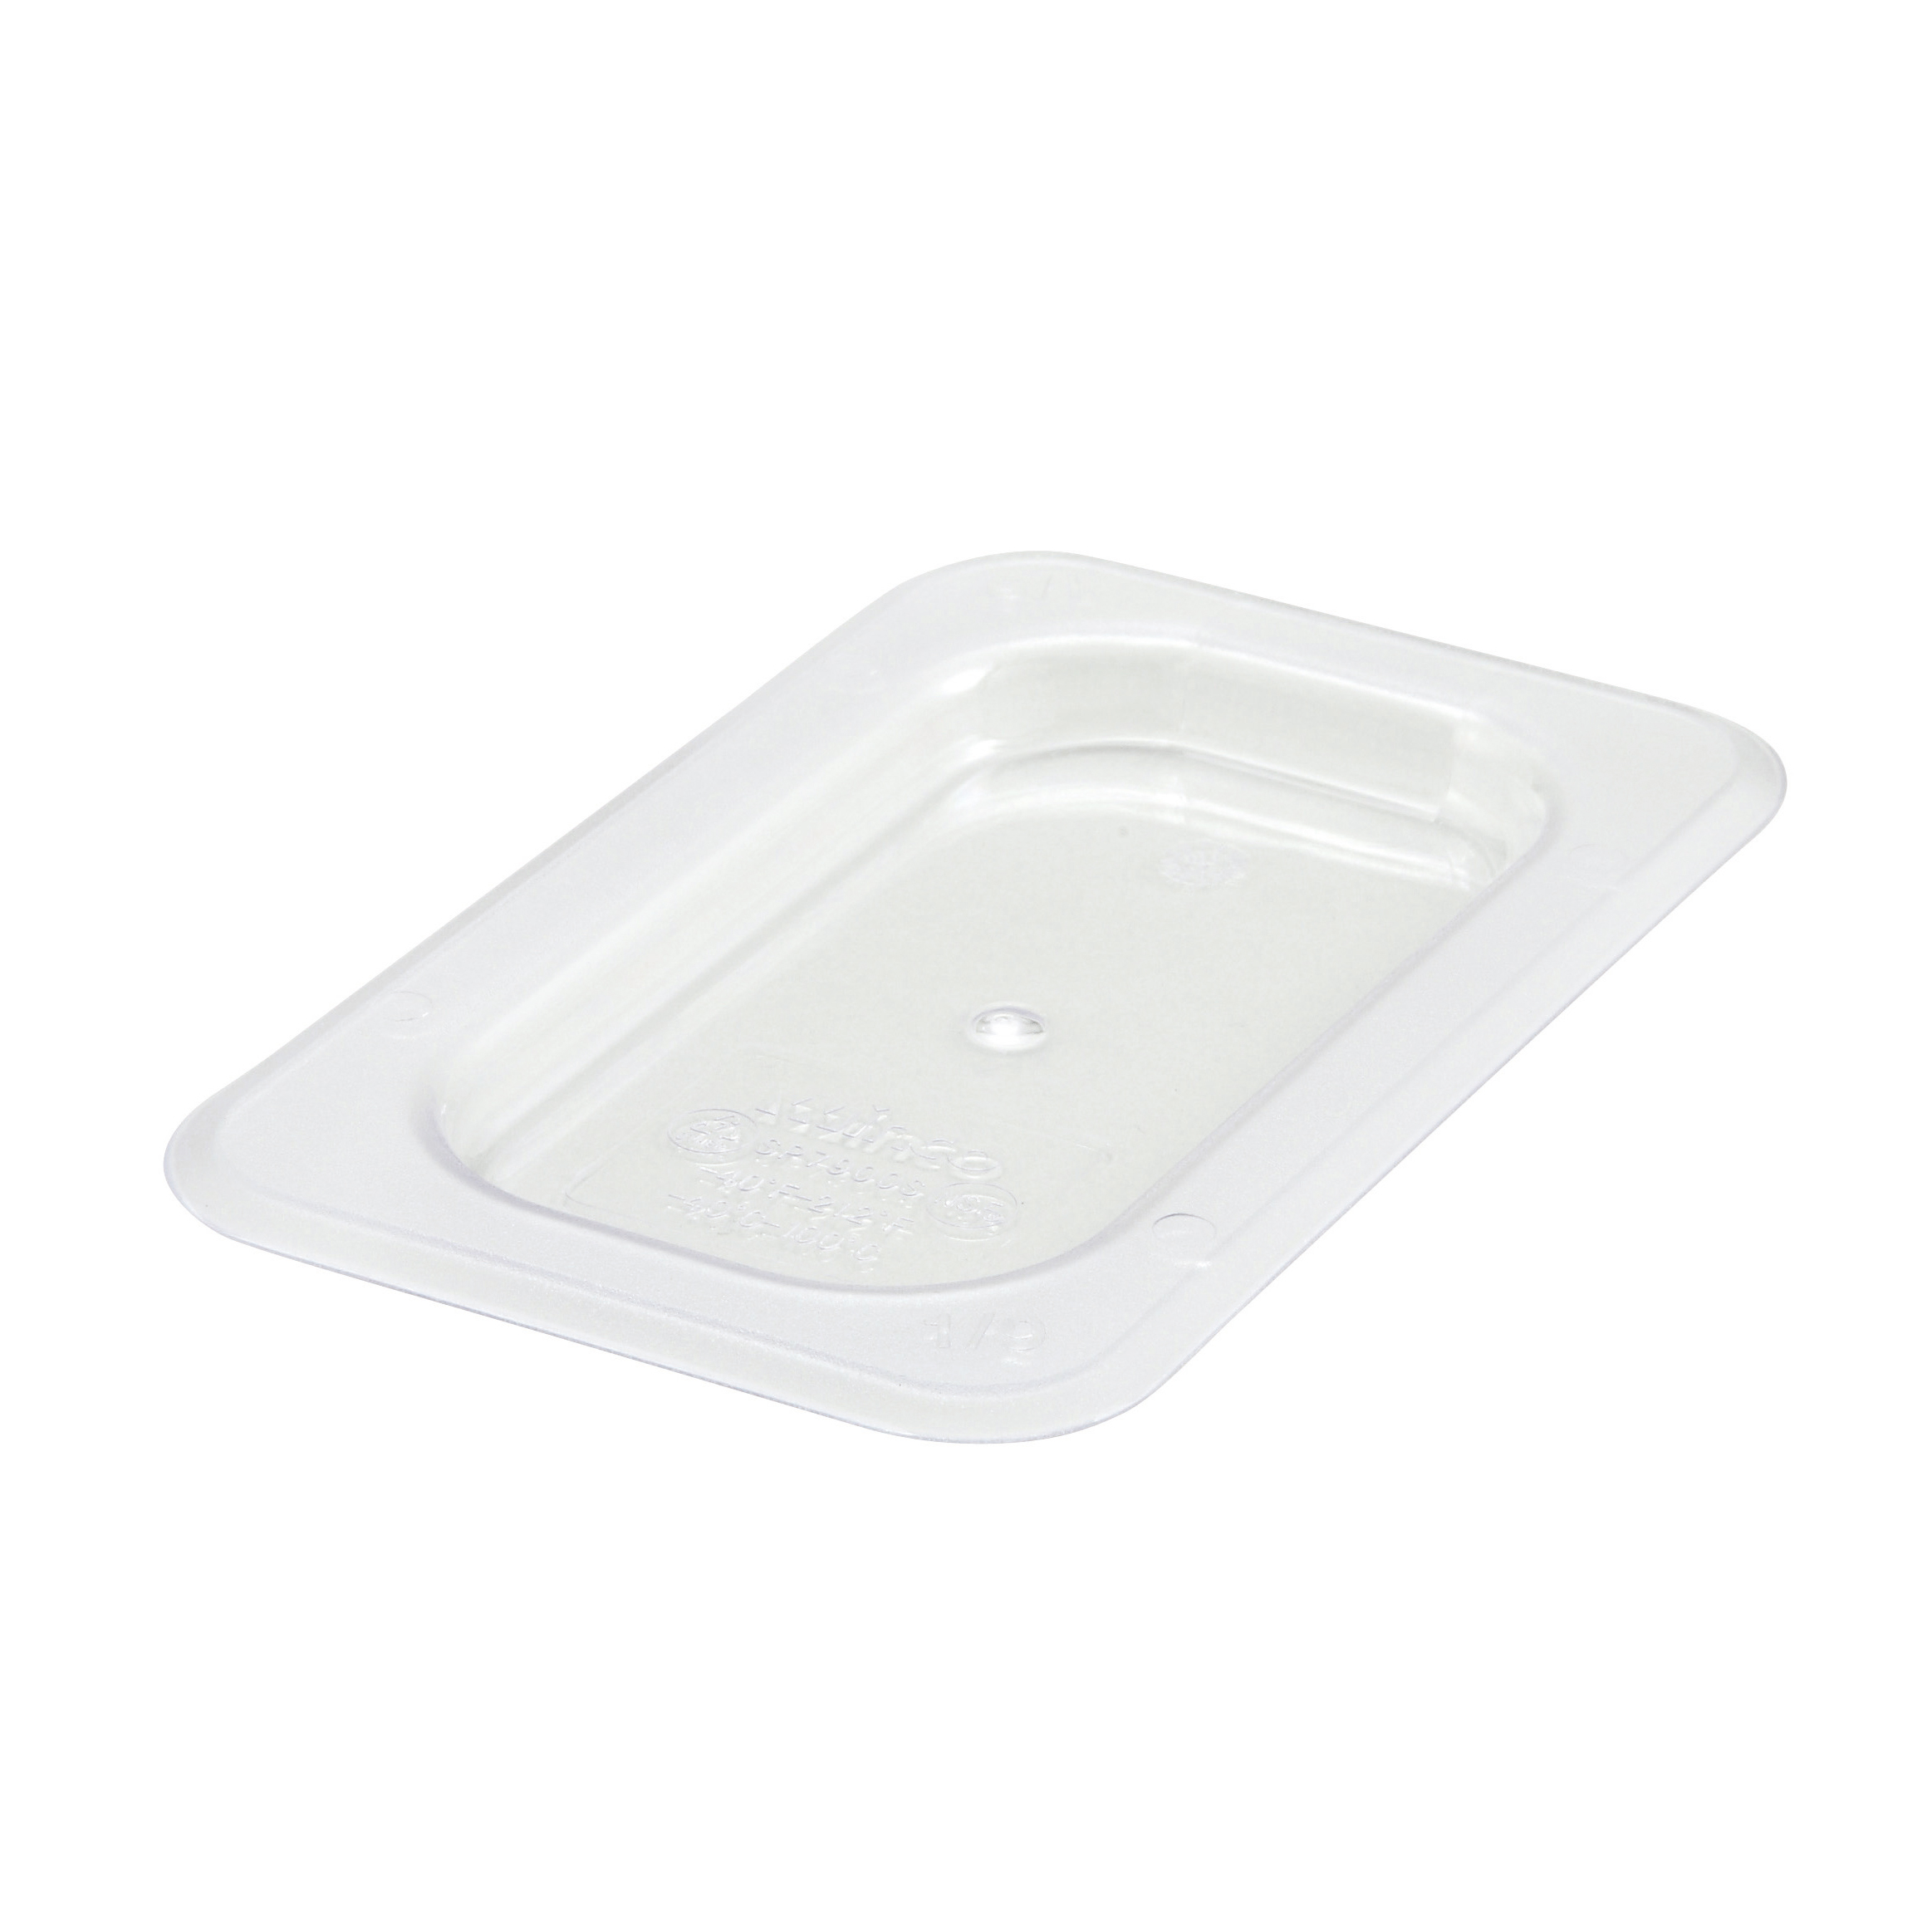 2410-043 Winco SP7900S food pan cover, plastic